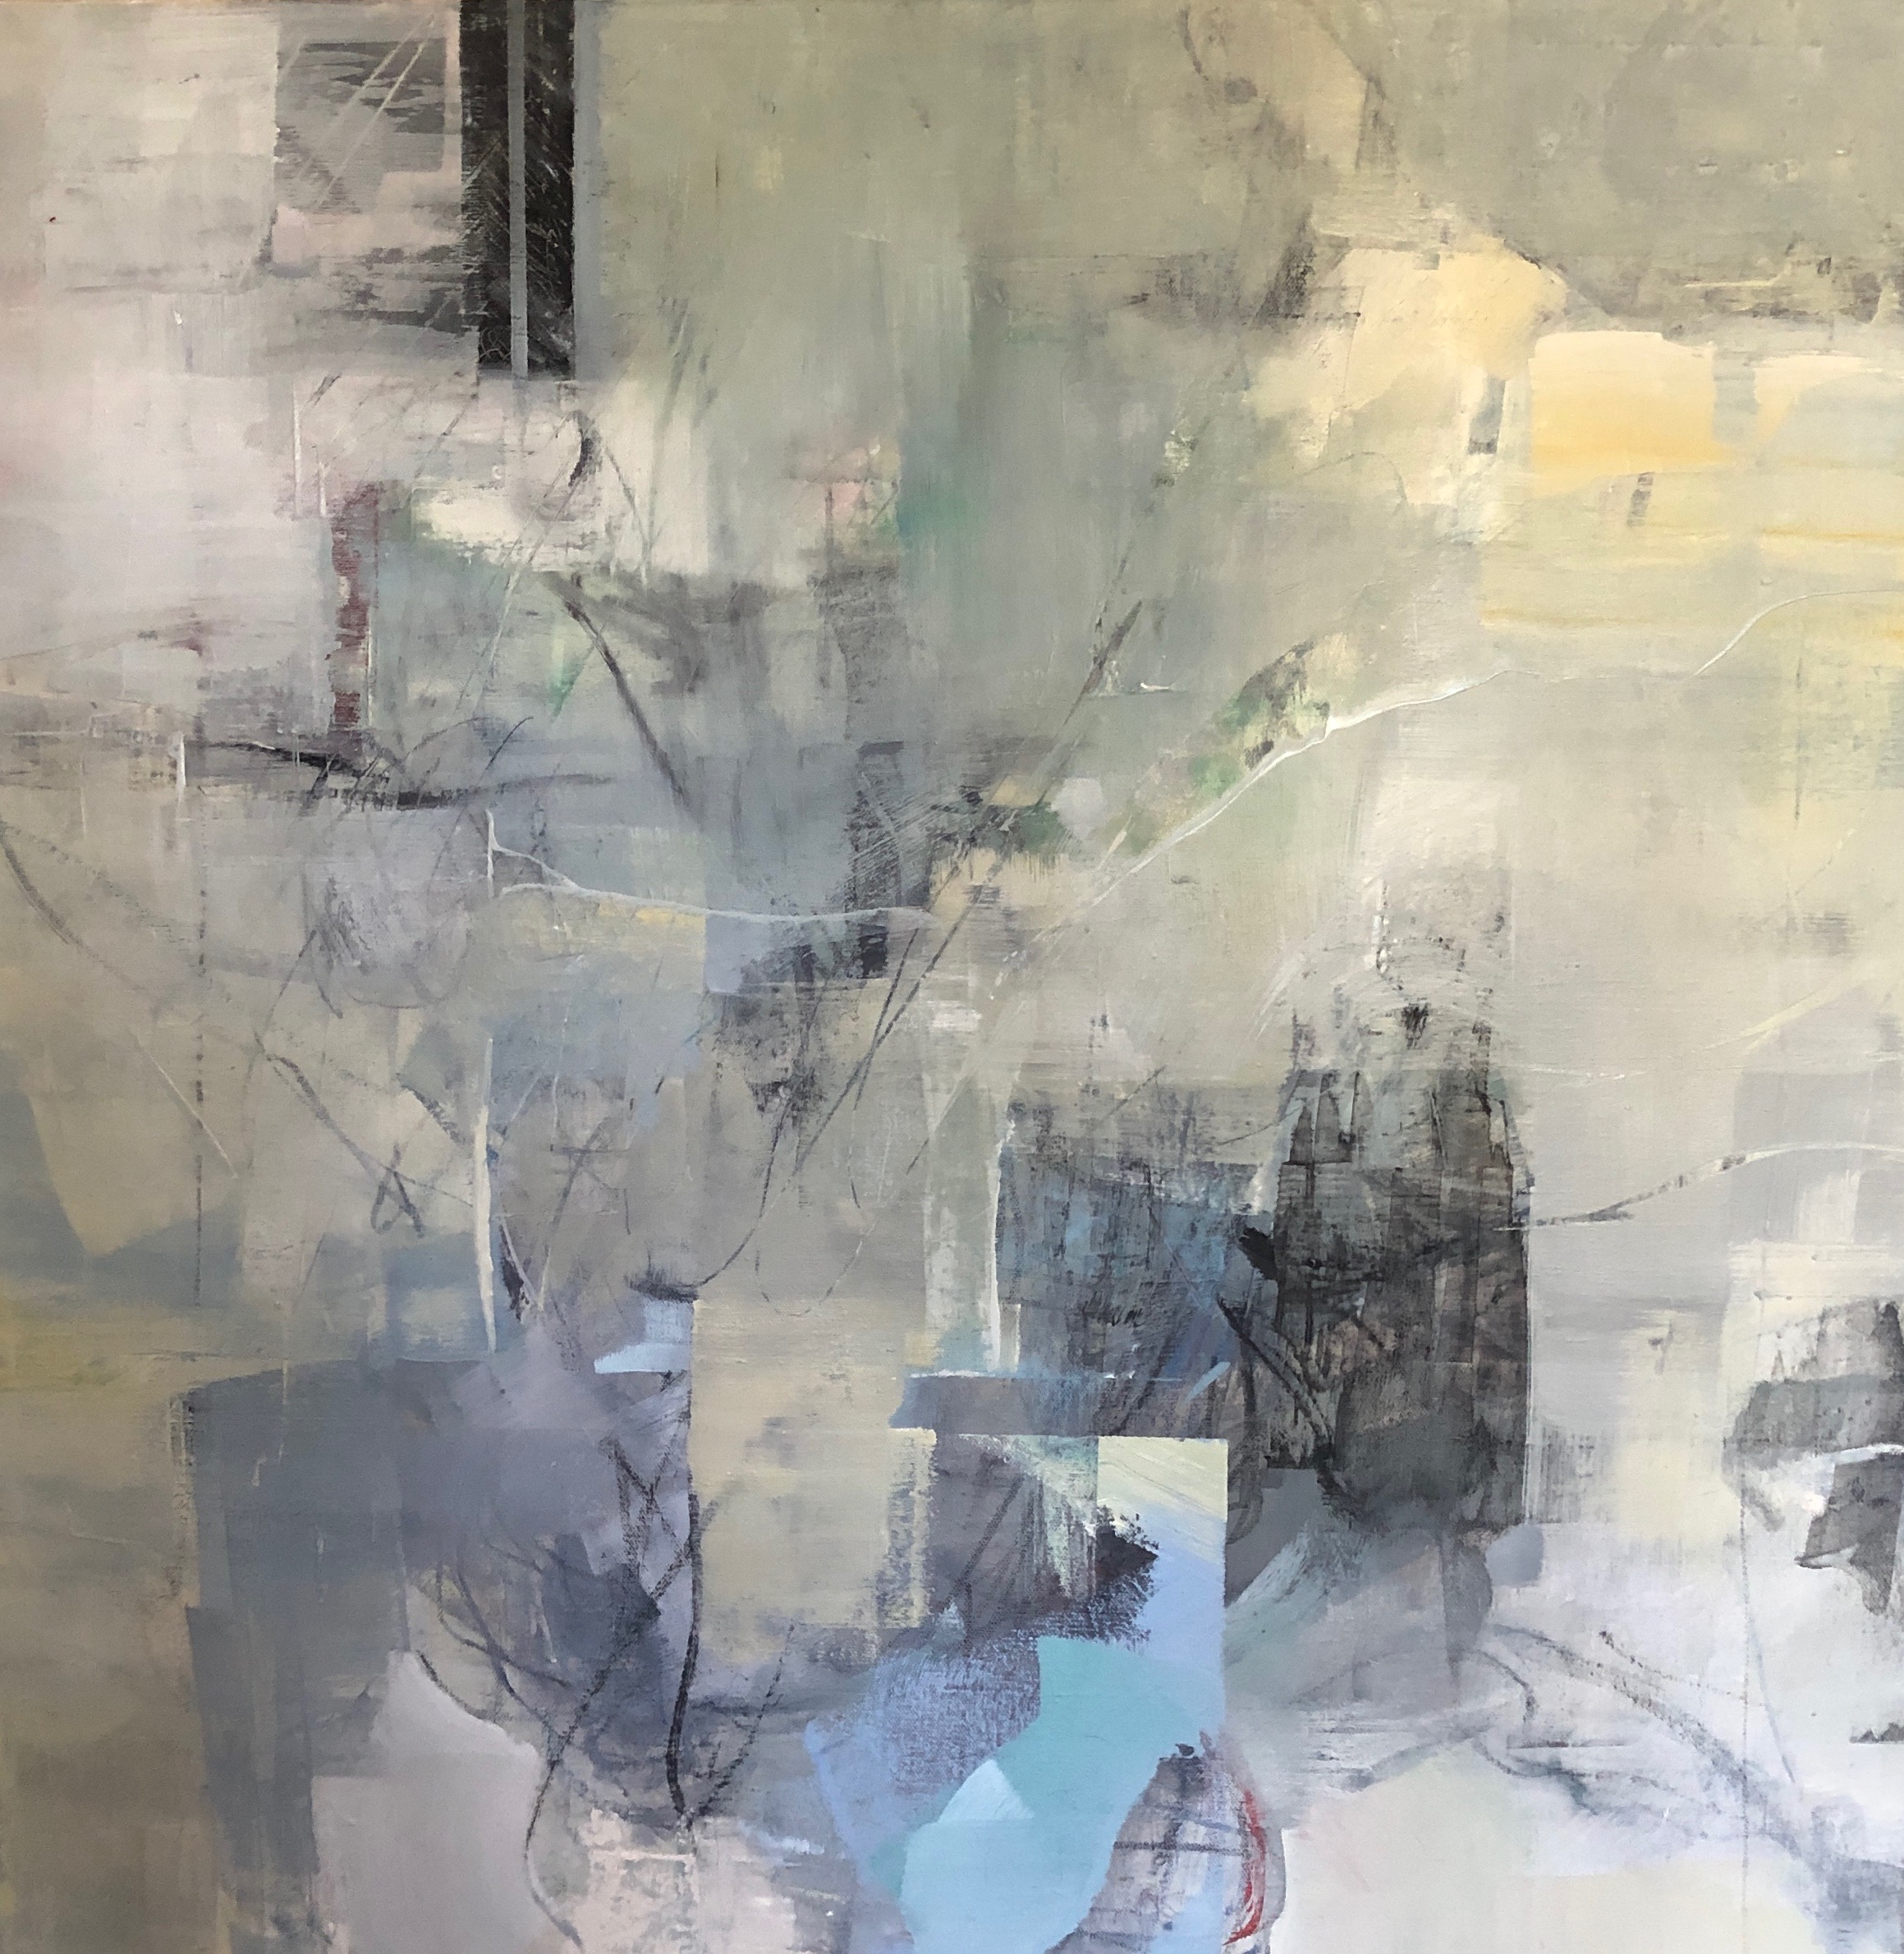 blue, gray, yellow, white abstract painting